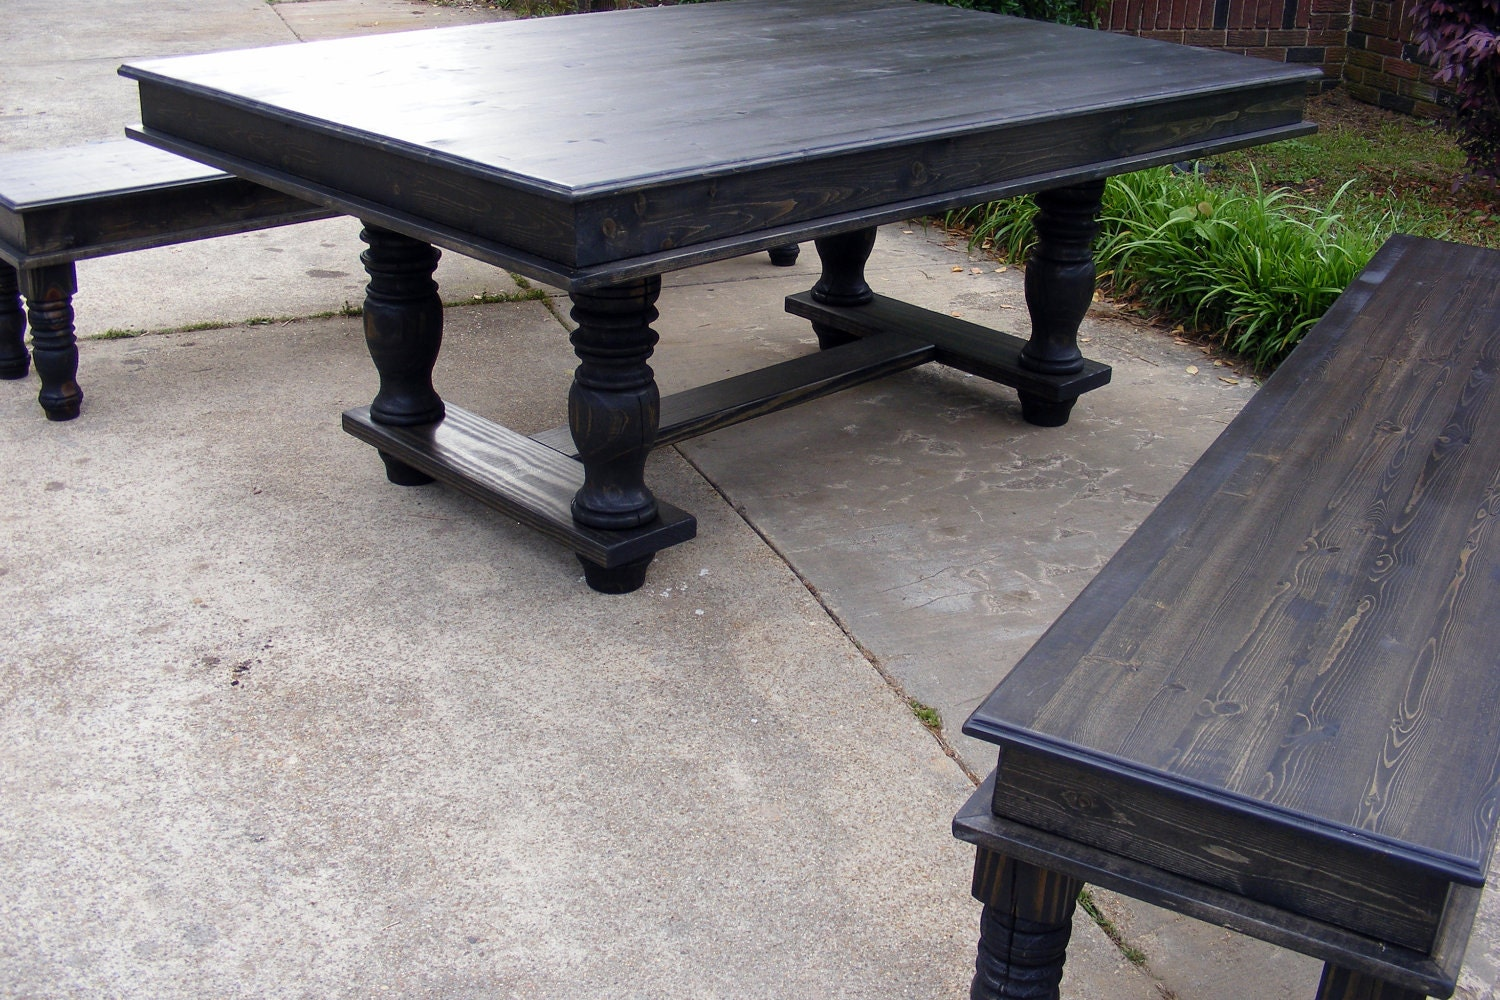 Trestle Dining Table And Matching Benches Ebony Stained Finish : ilfullxfull327414422 from www.etsy.com size 1500 x 1000 jpeg 452kB